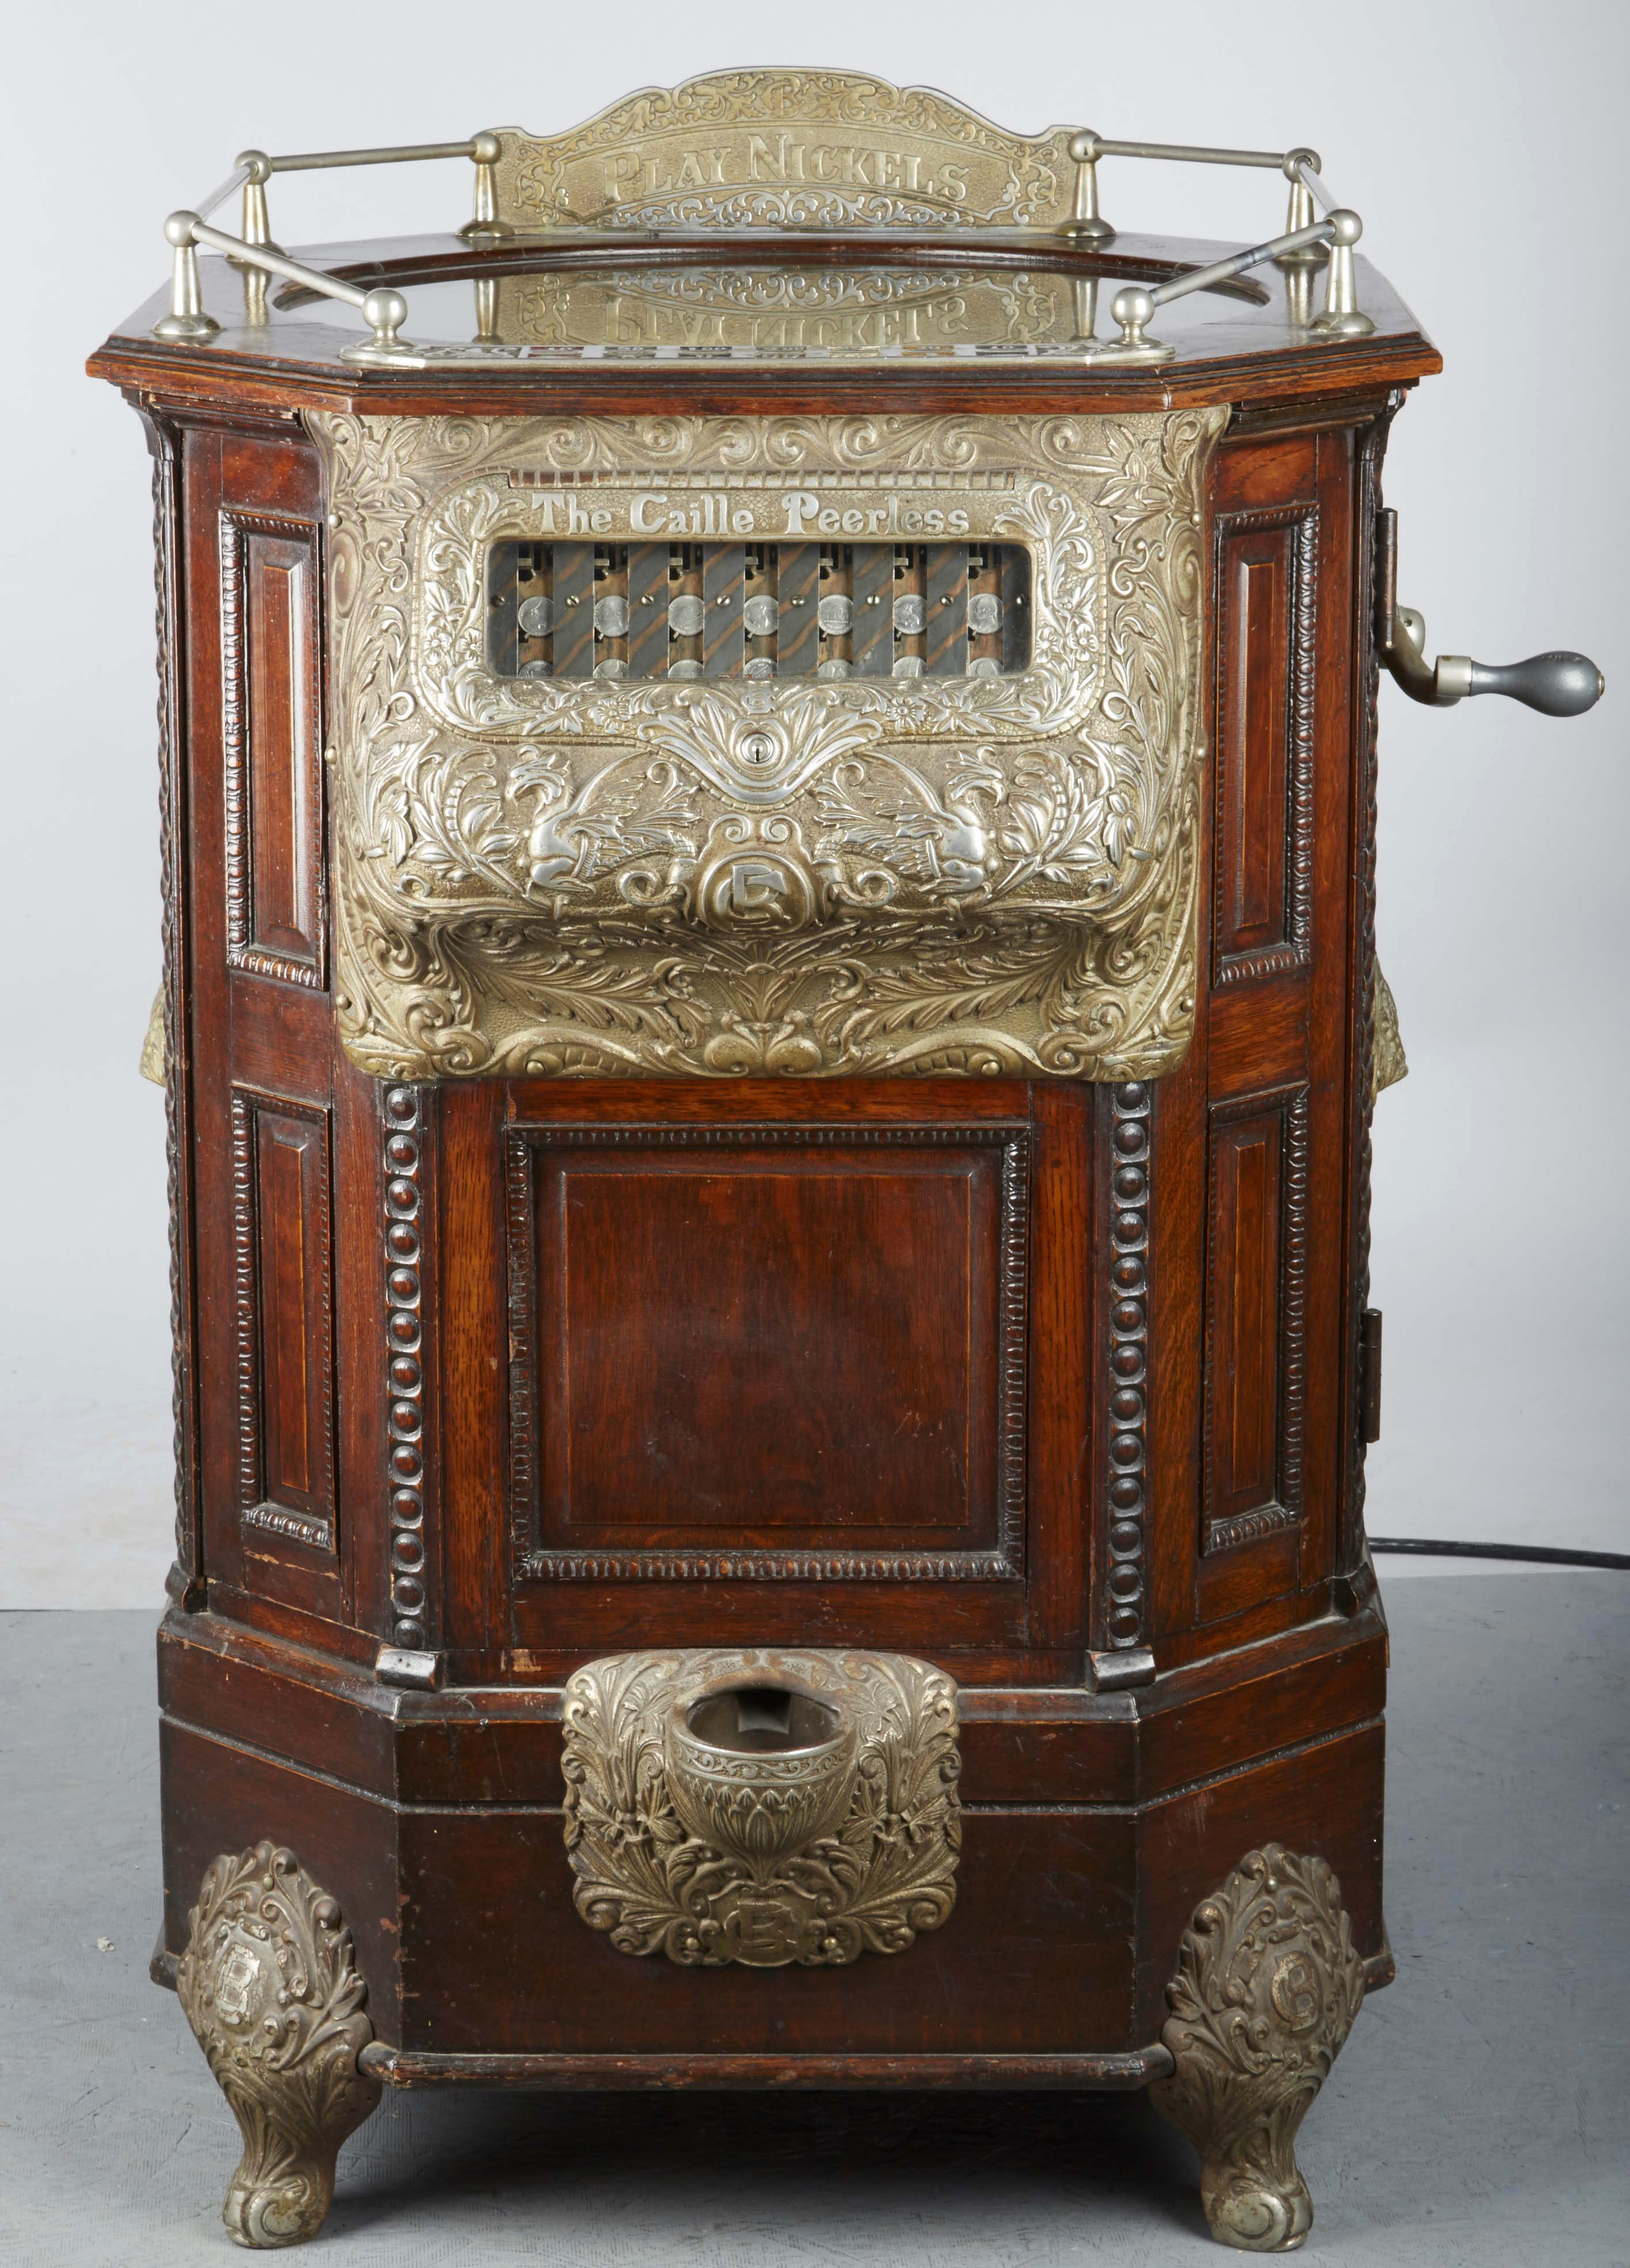 Caille Peerless 5-cent floor roulette slot machine, $300,000, new world record for a slot machine sold at auction. Morphy Auctions image